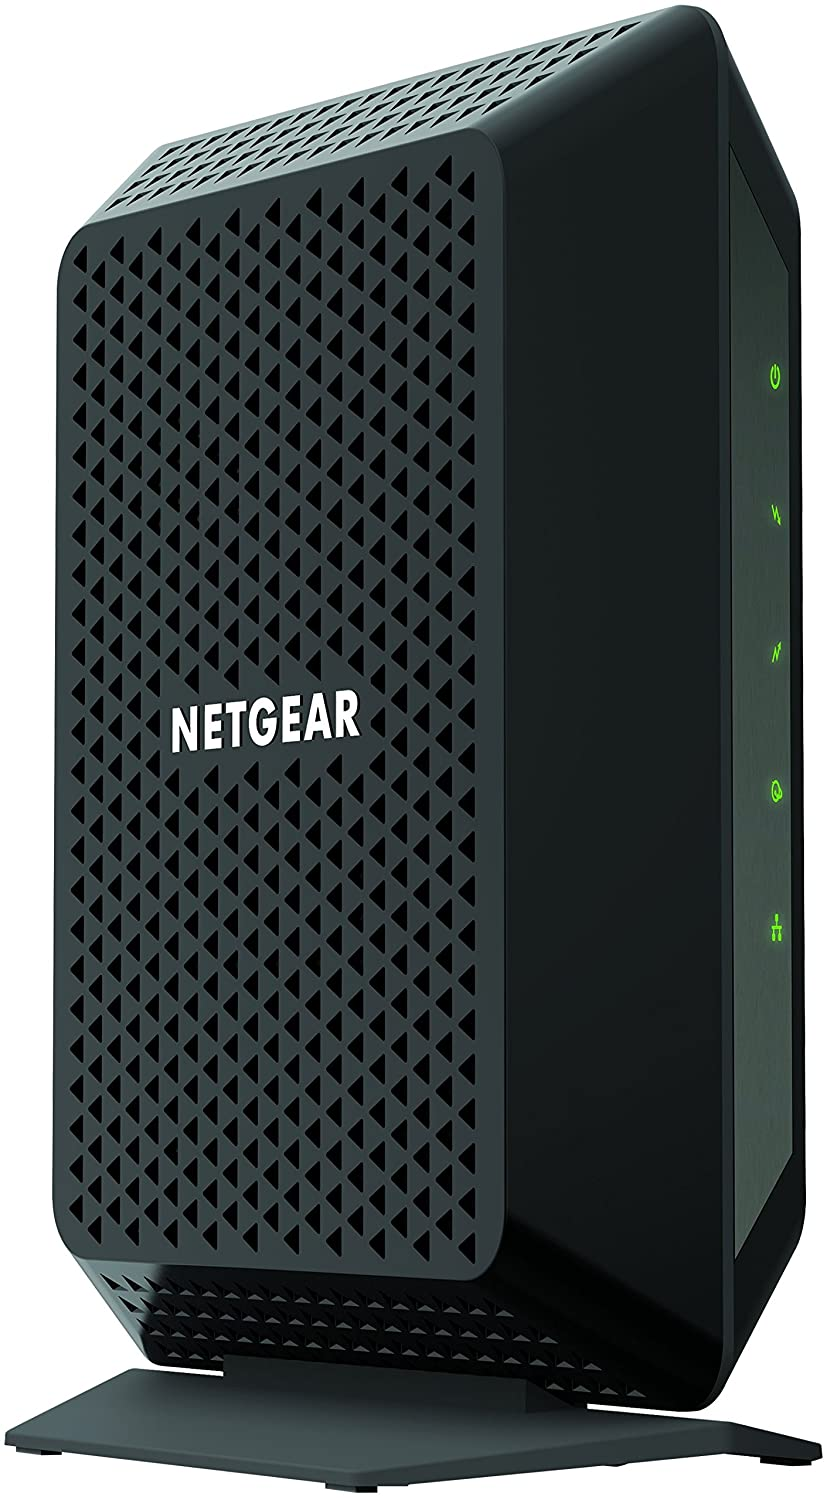 Internet And Cable Providers >> Netgear Cable Modem Cm700 Compatible With All Cable Providers Including Xfinity By Comcast Spectrum Cox For Cable Plans Up To 500 Mbps Docsis